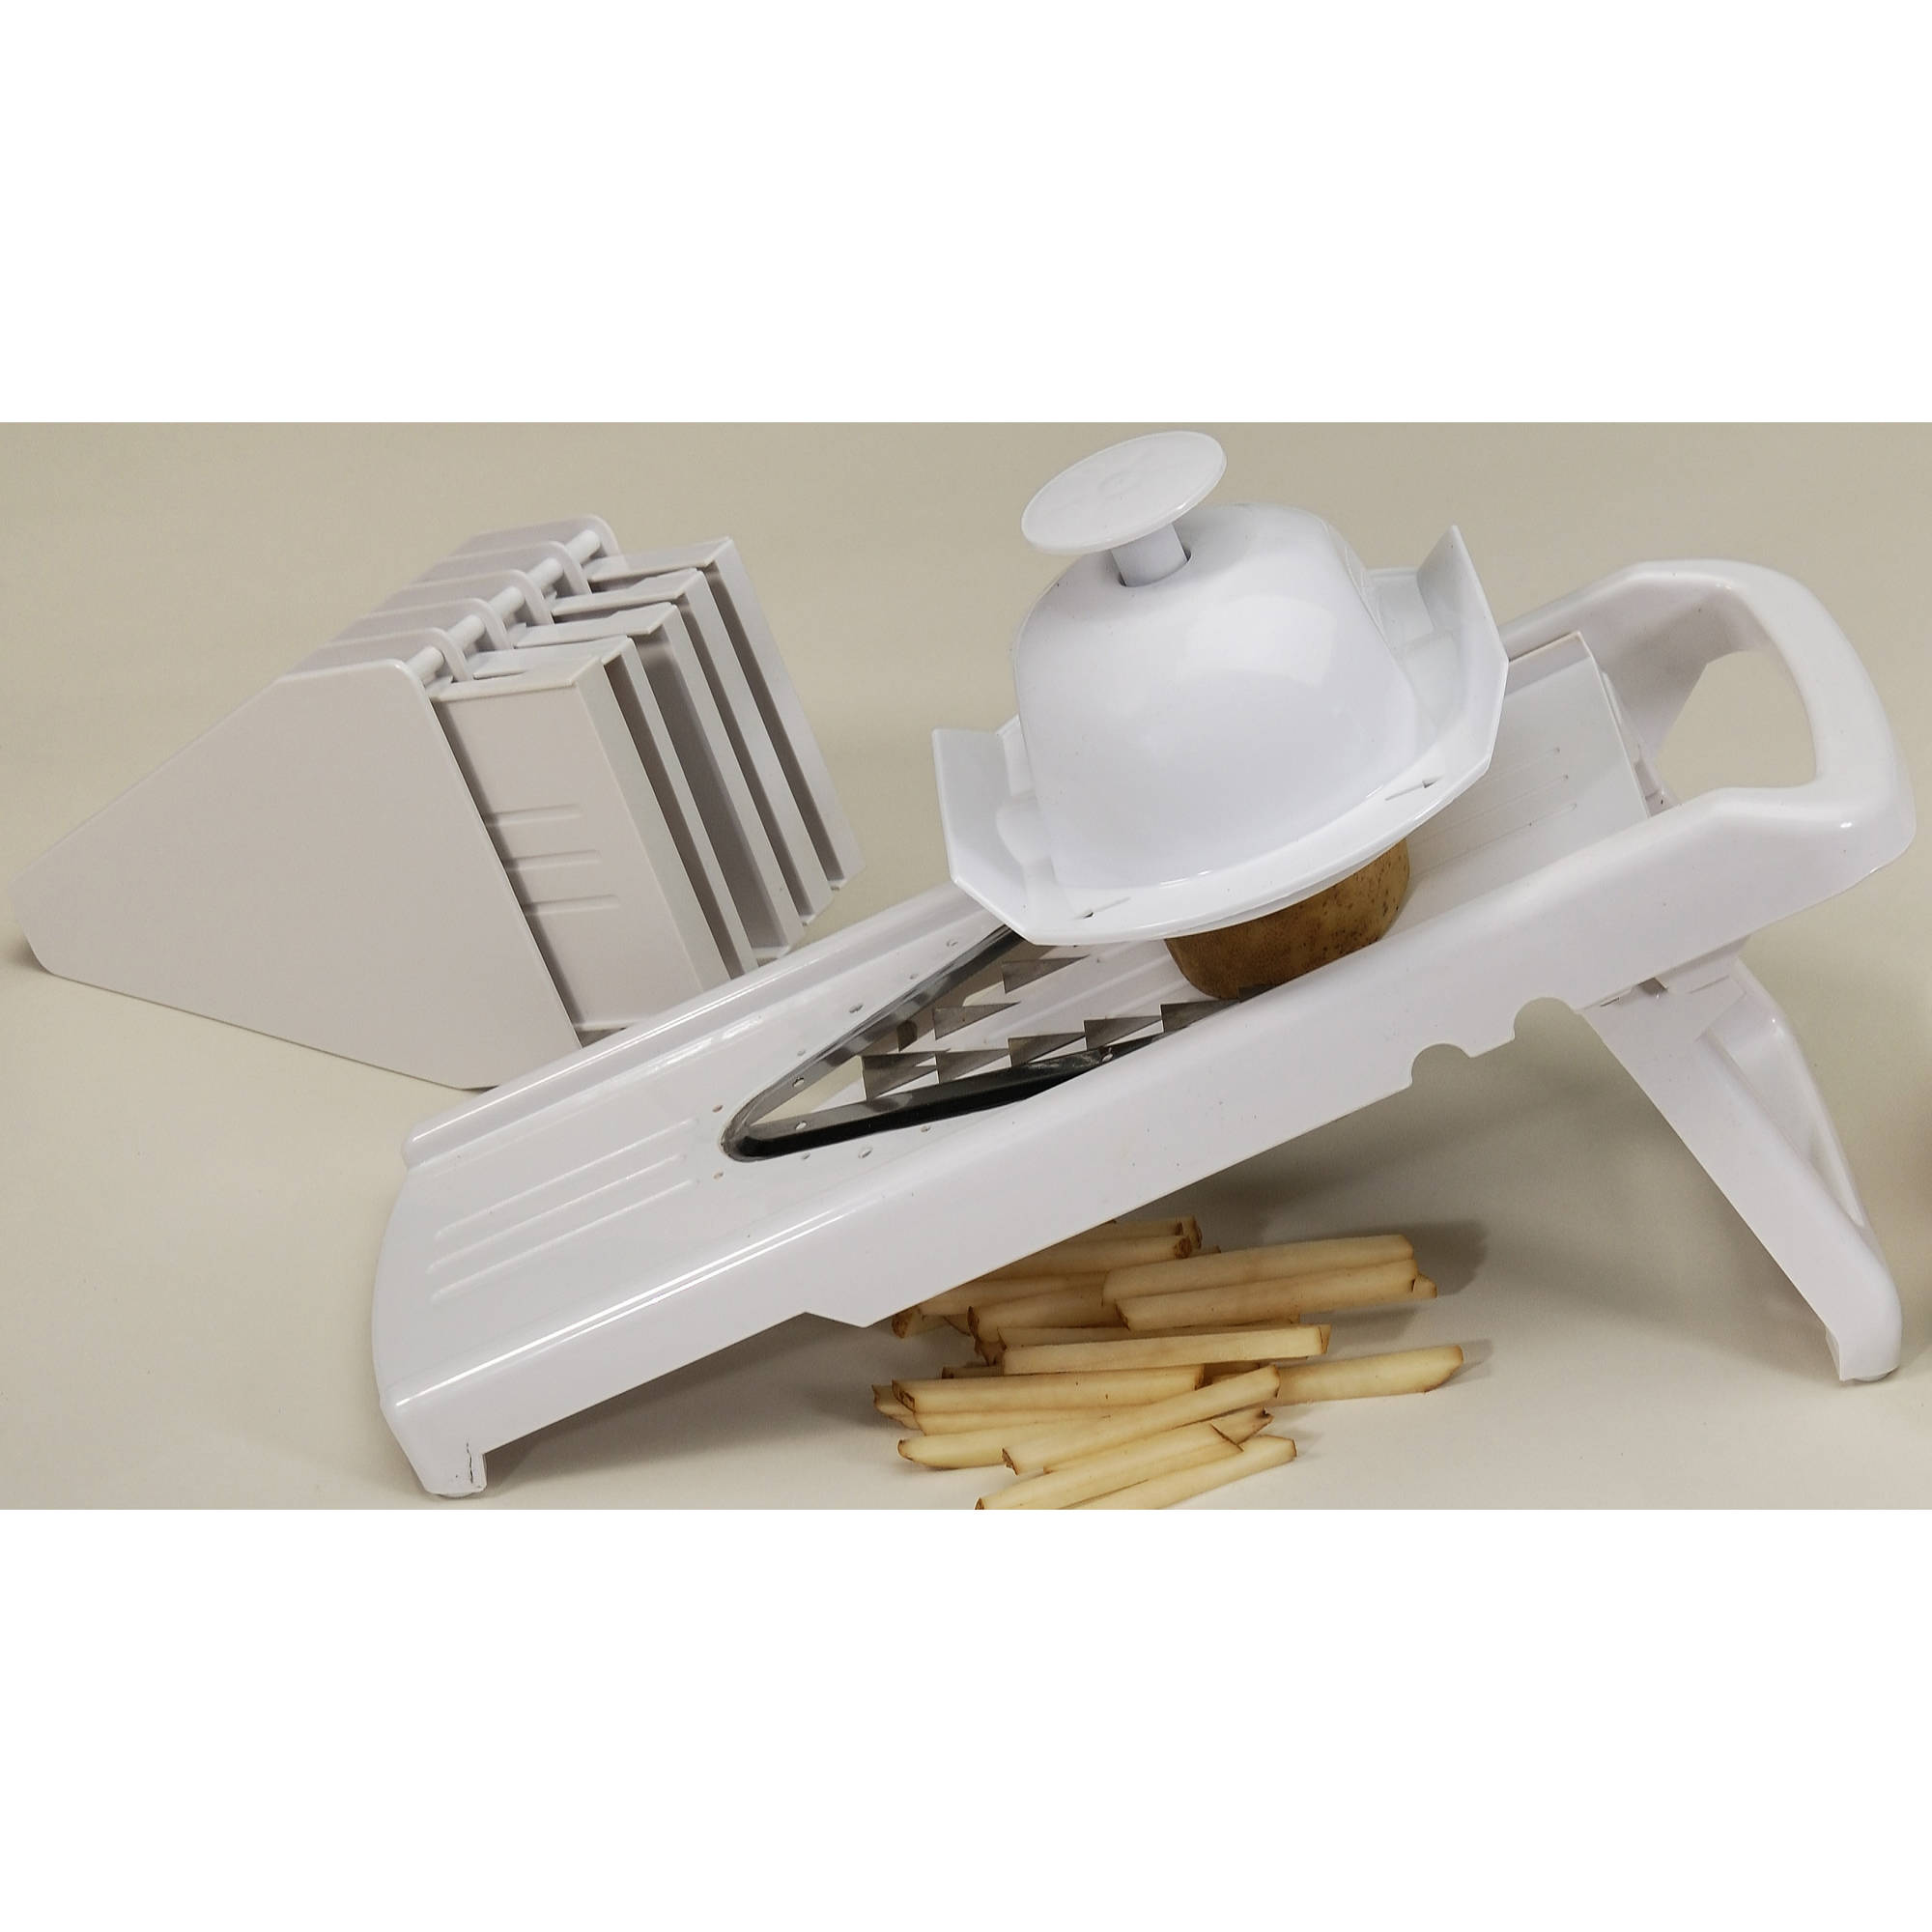 COOK PRO 9-Piece Mandolin Slicer with V-Shaped Blade by Cook Pro